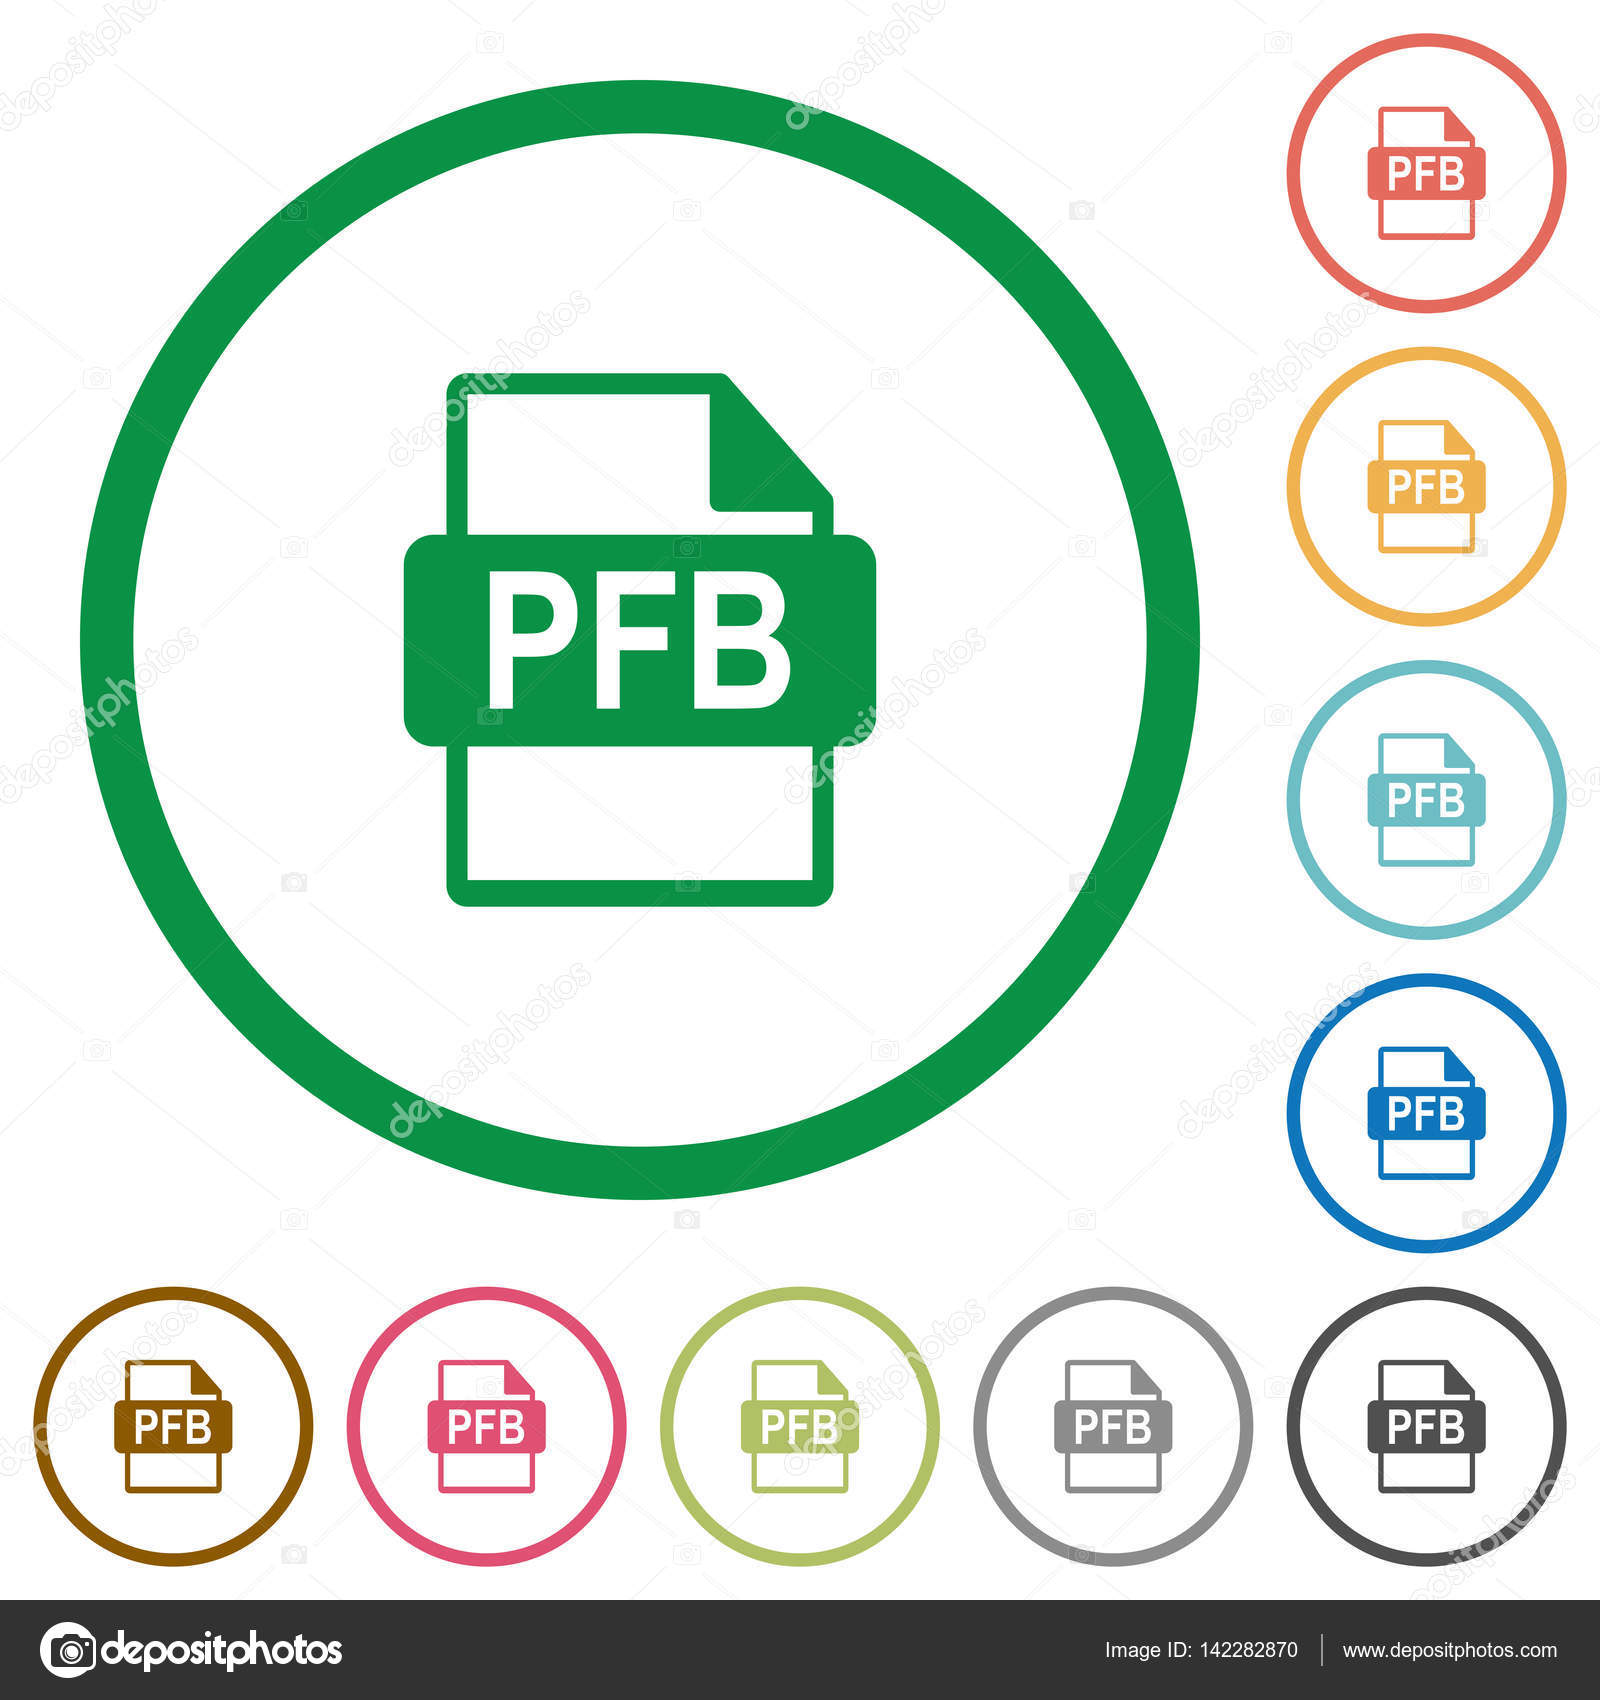 what is a pfb file